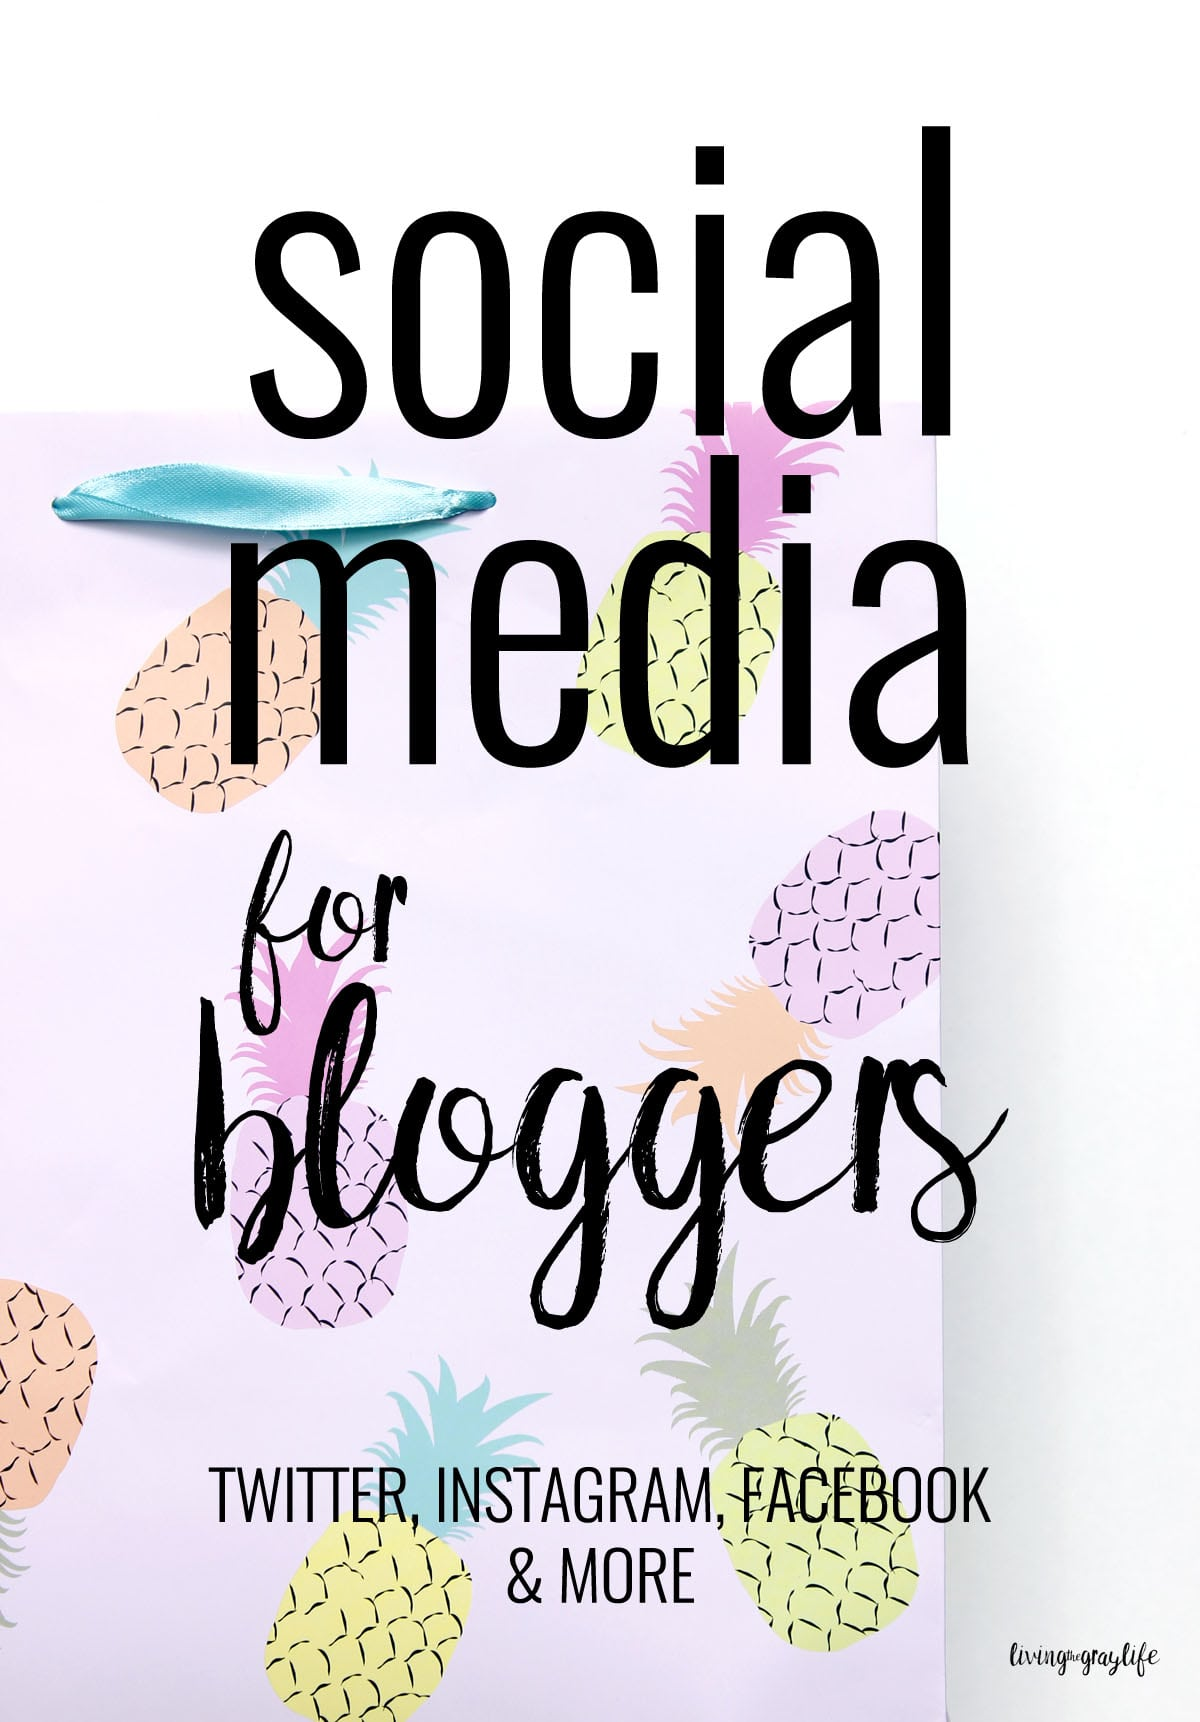 Struggling to grasp social media as a blogger? Follow these simple tips to help grow your social platforms!